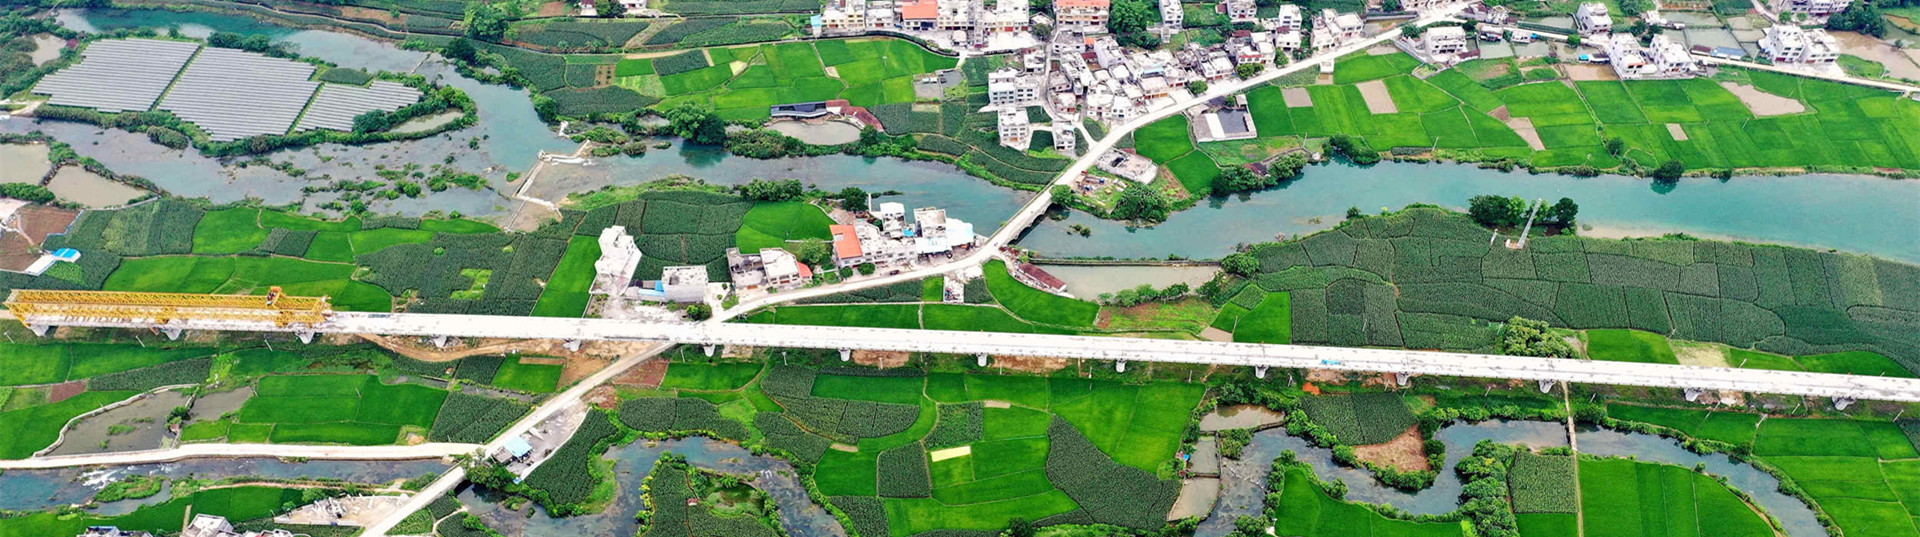 Hechi continues efforts to become 'national forest city'